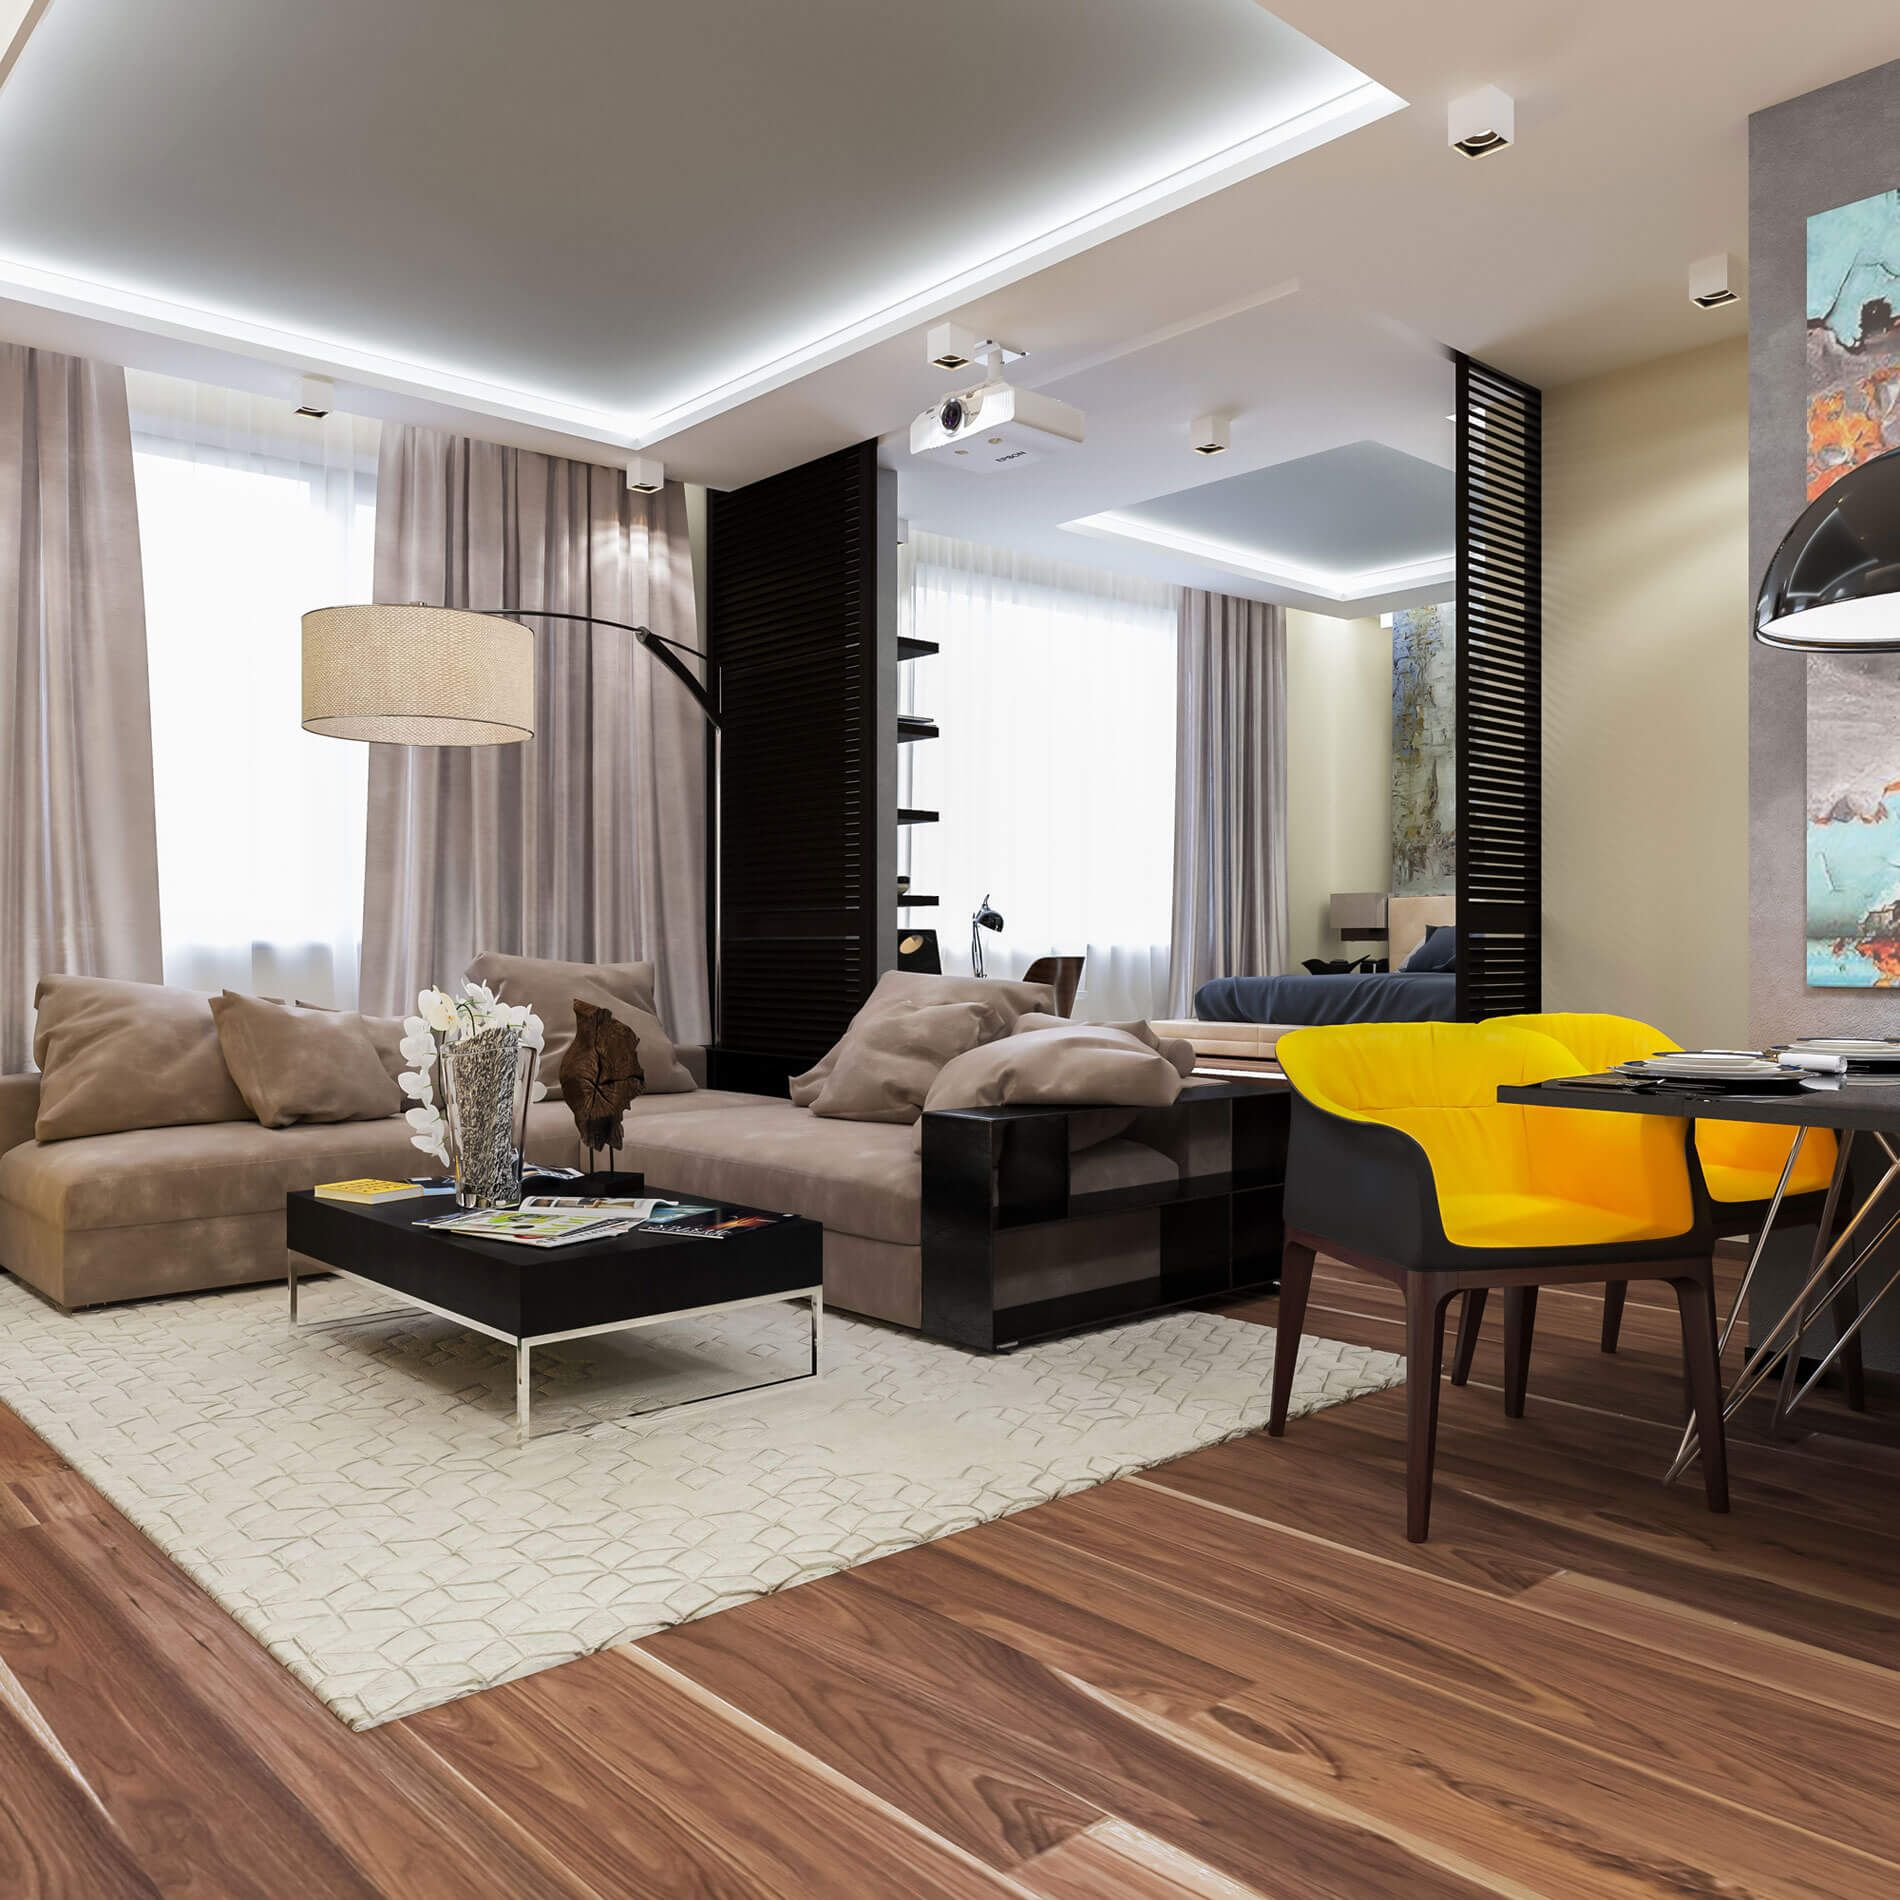 Apartment In Moscow By Interierium Decorating Ideas Moscow Interierium  Apartment. Find This Pin And More On Home Interior Design ...